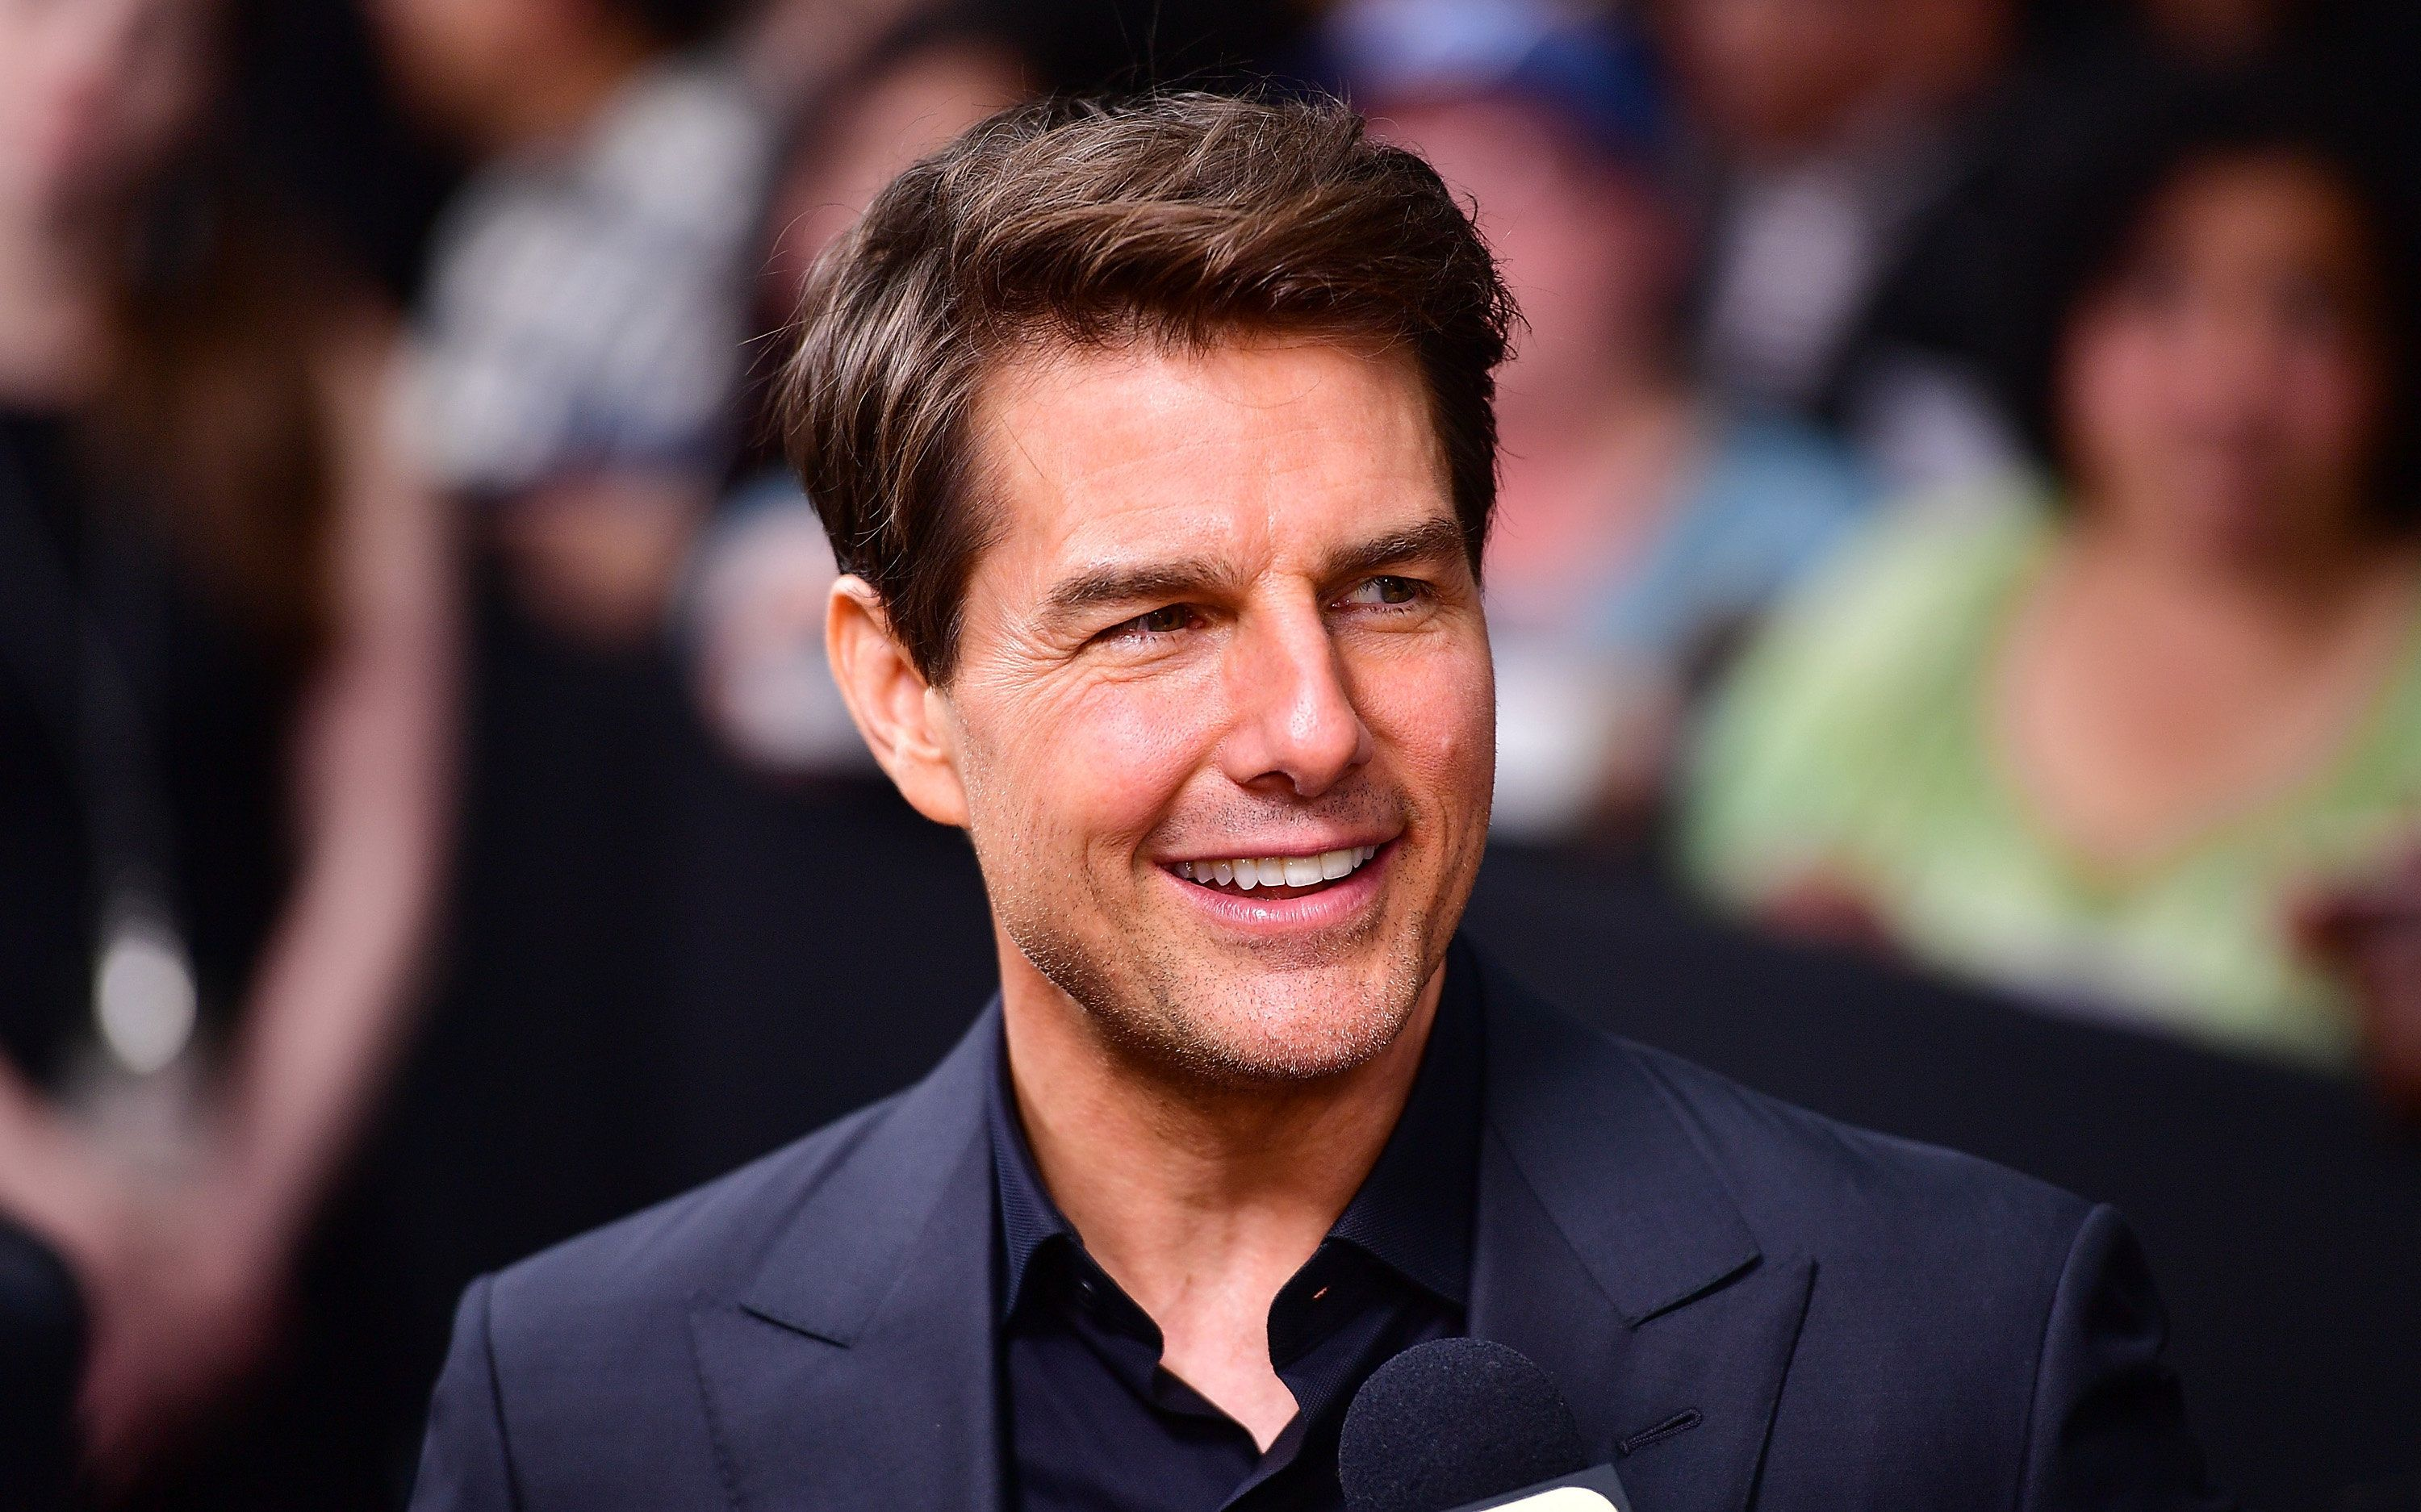 NEW YORK, NY - JUNE 06:  Tom Cruise attends the 'The Mummy' New York Fan Event at AMC Loews Lincoln Square on June 6, 2017 in New York City.  (Photo by James Devaney/Getty Images)